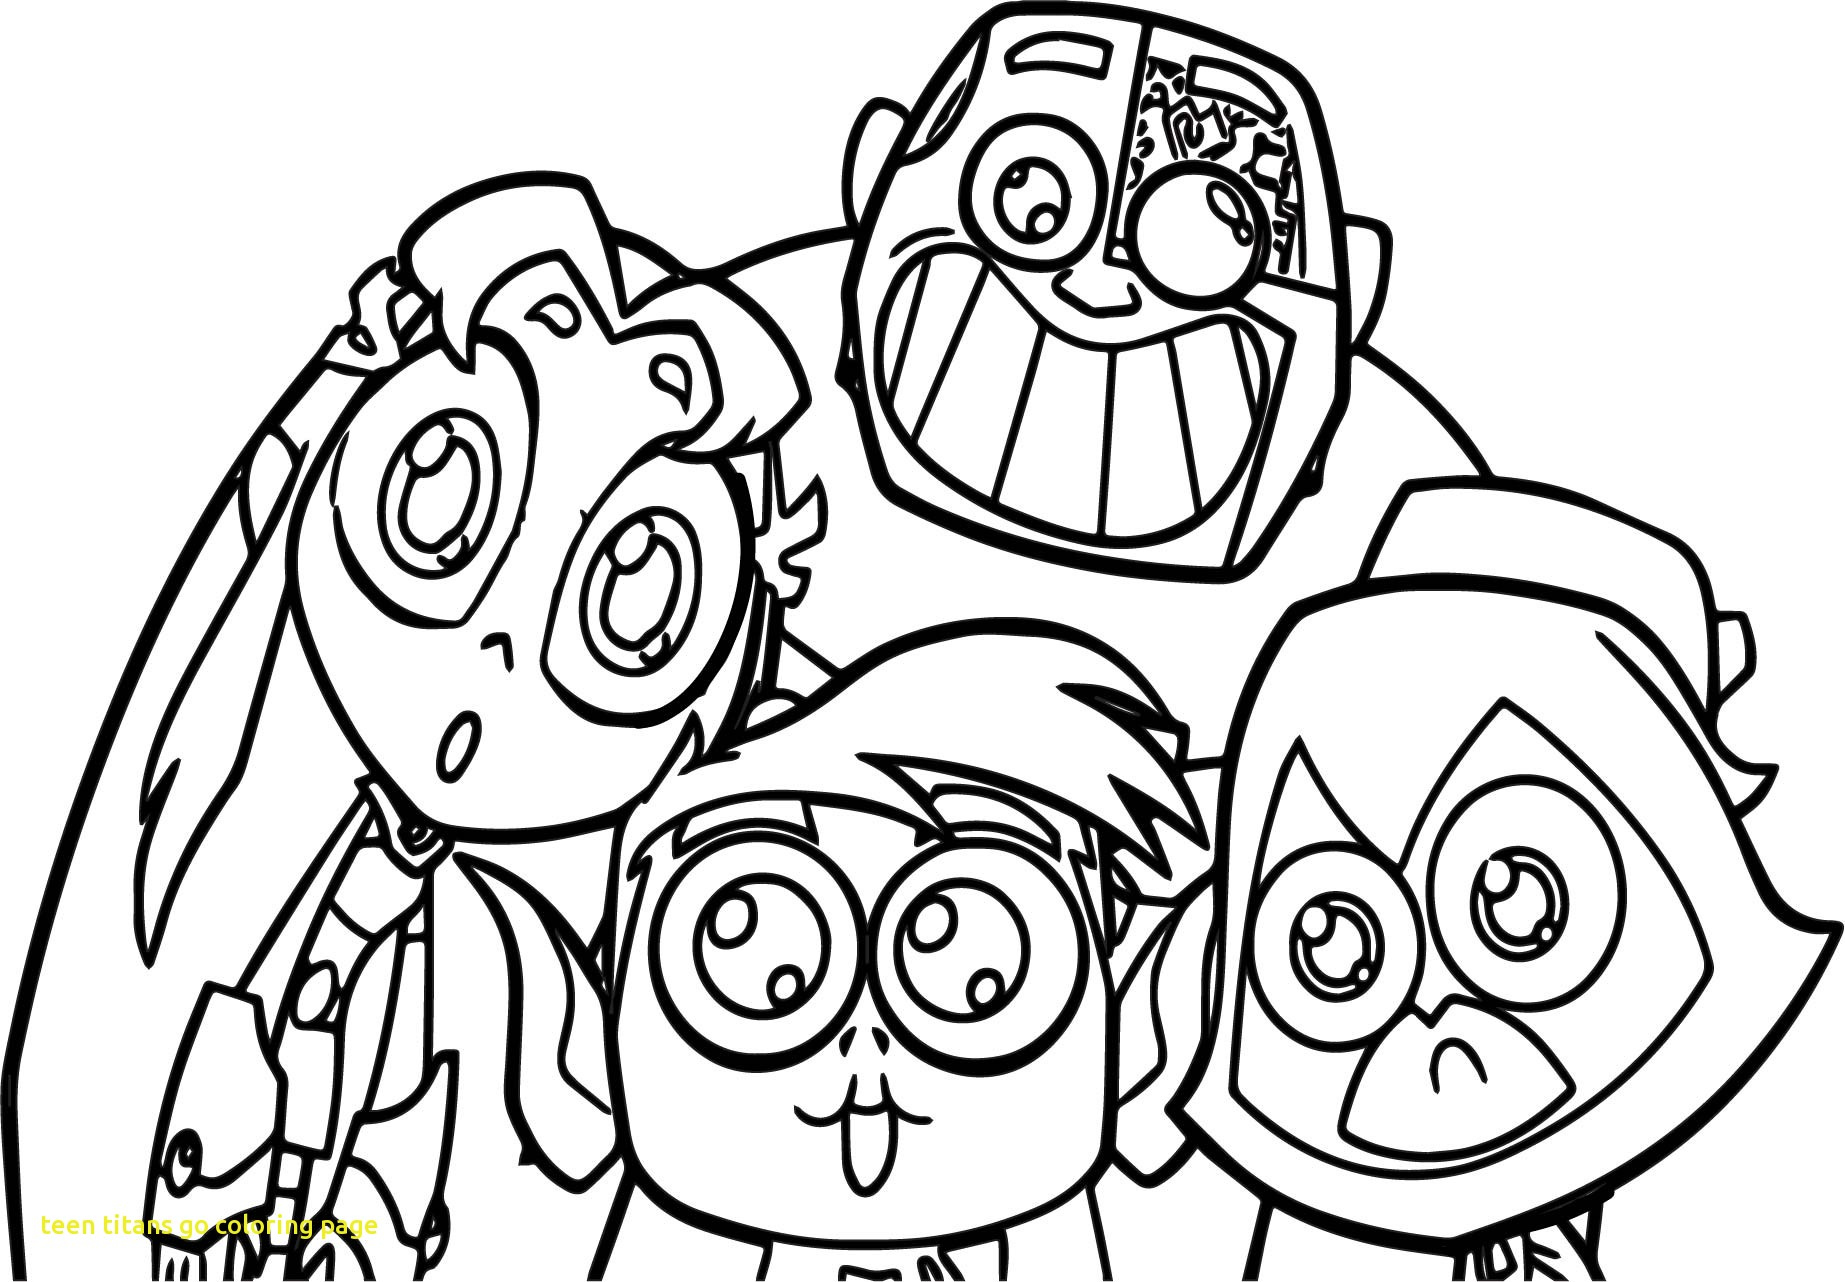 1845x1282 Teen Titans Go Coloring Page With Teen Titans Coloring Pages Best